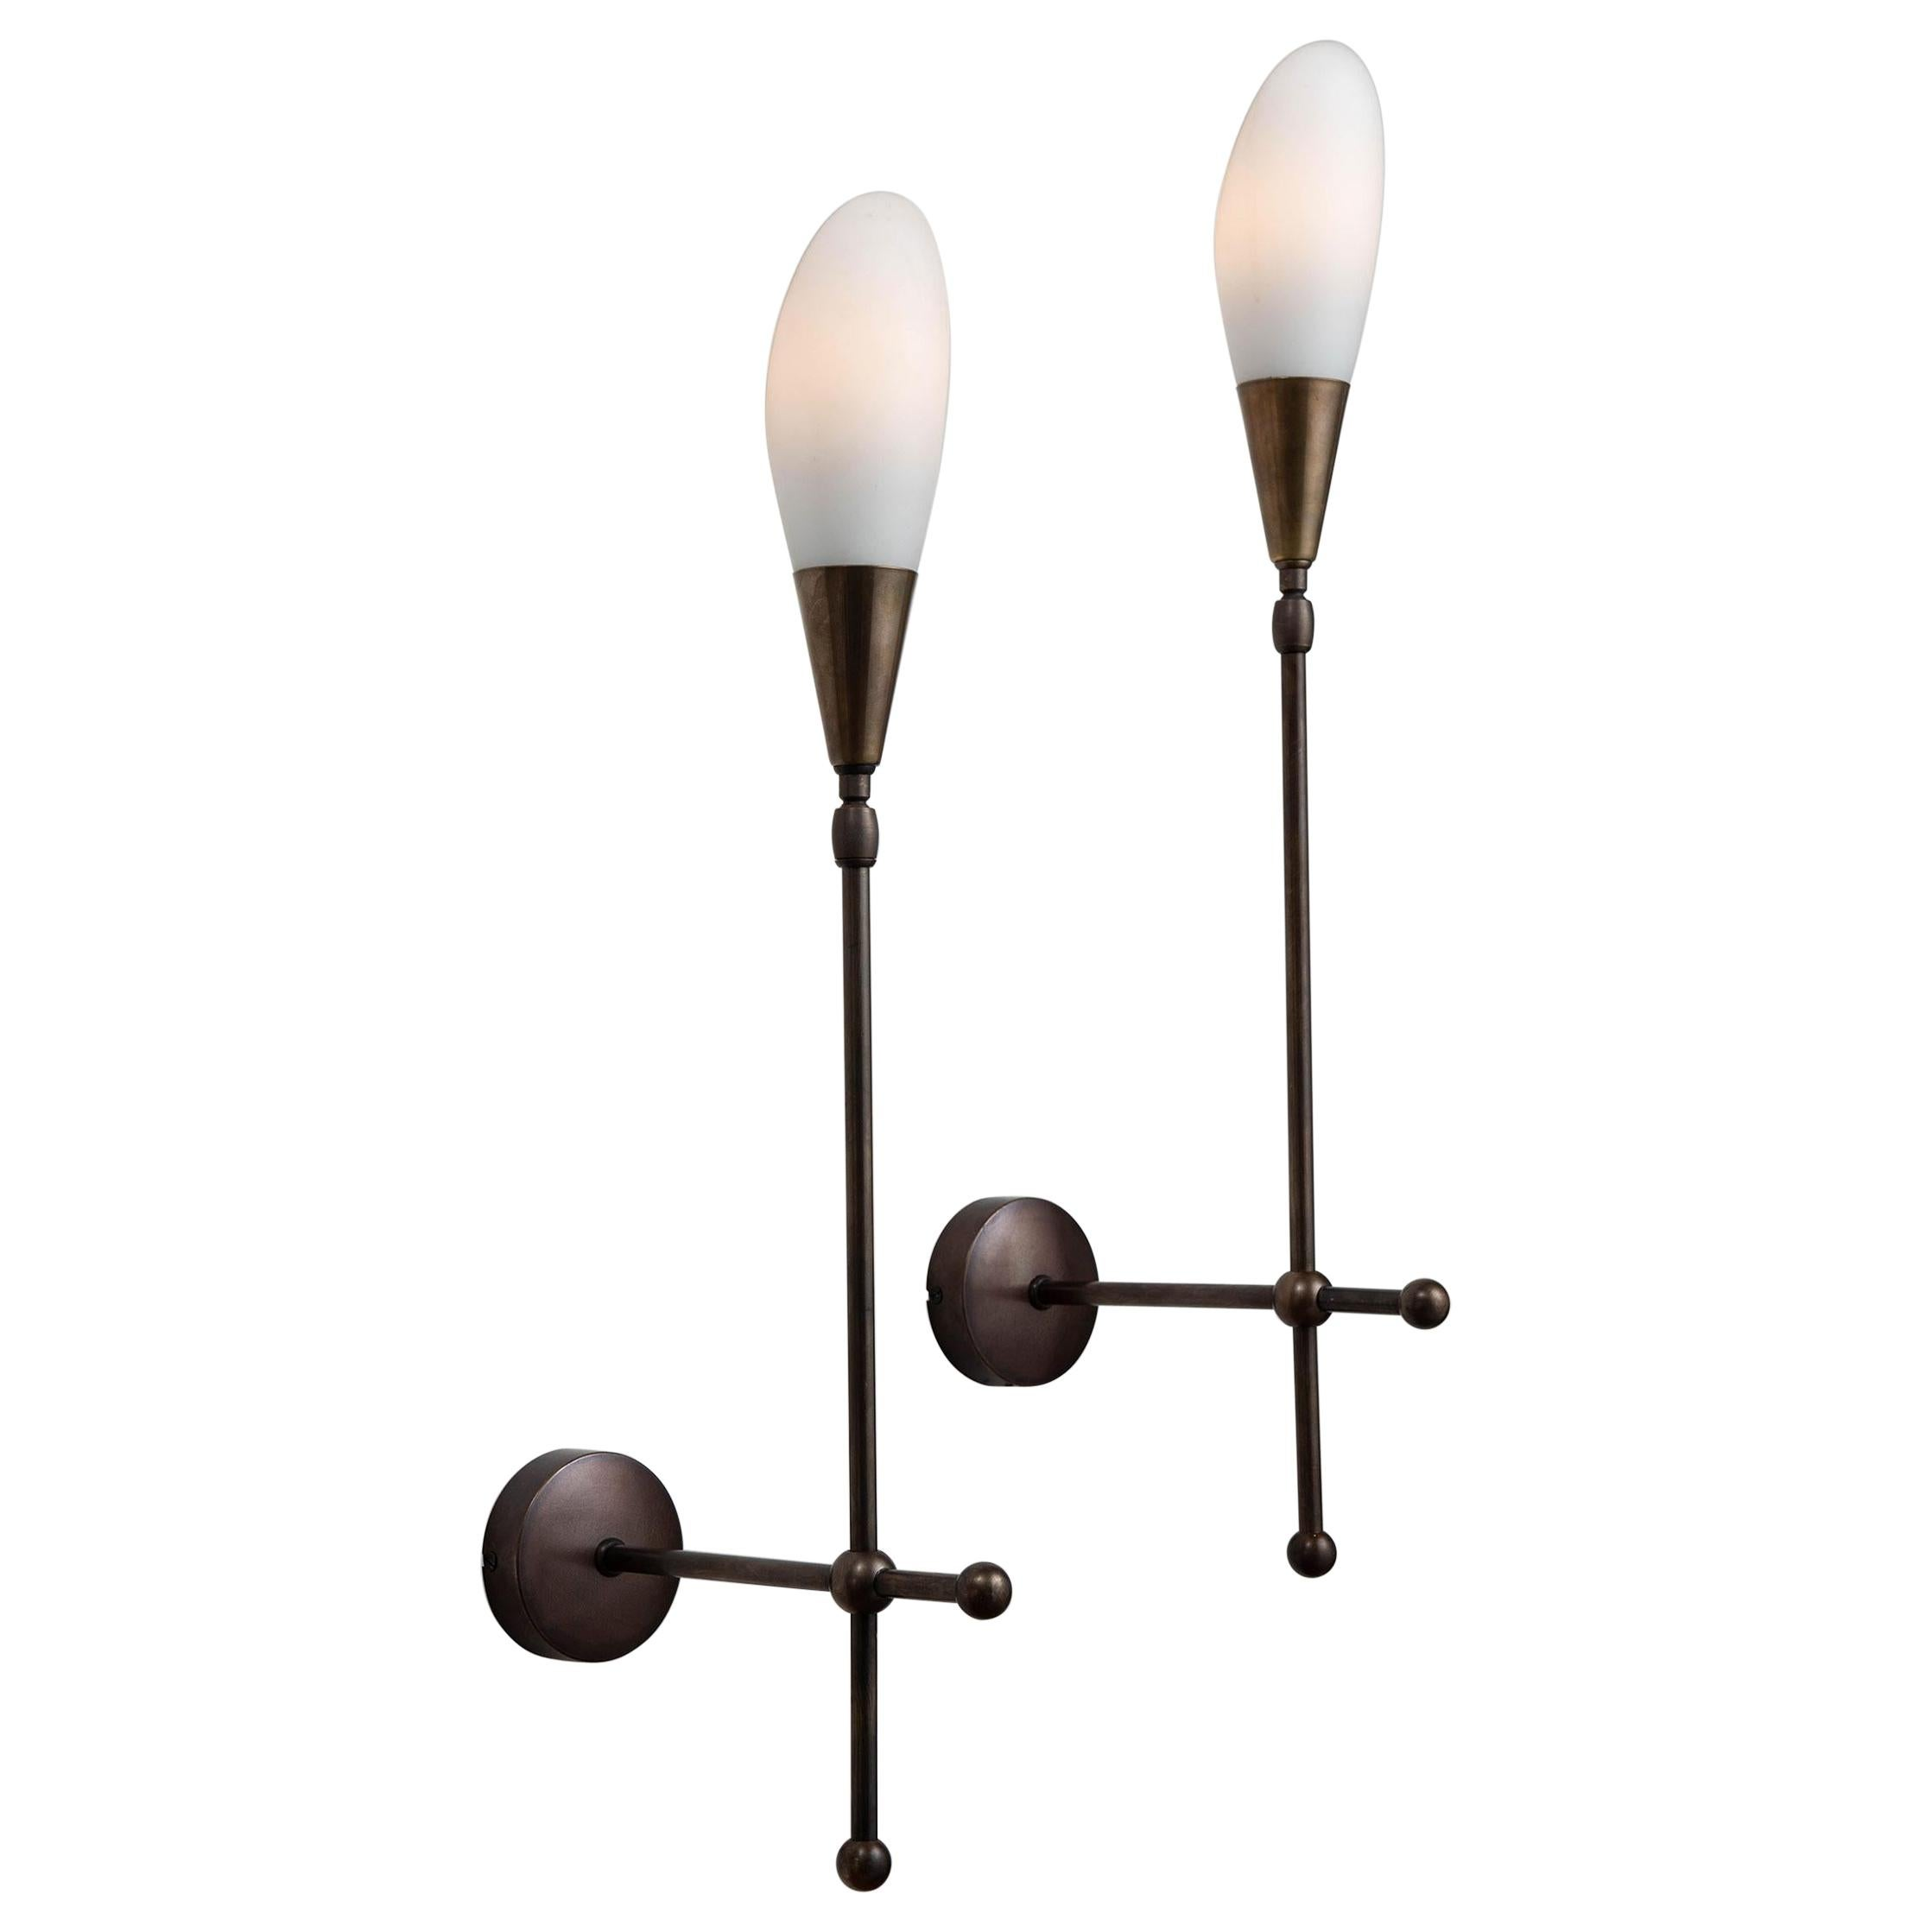 Opaline Glass and Brass Sconce